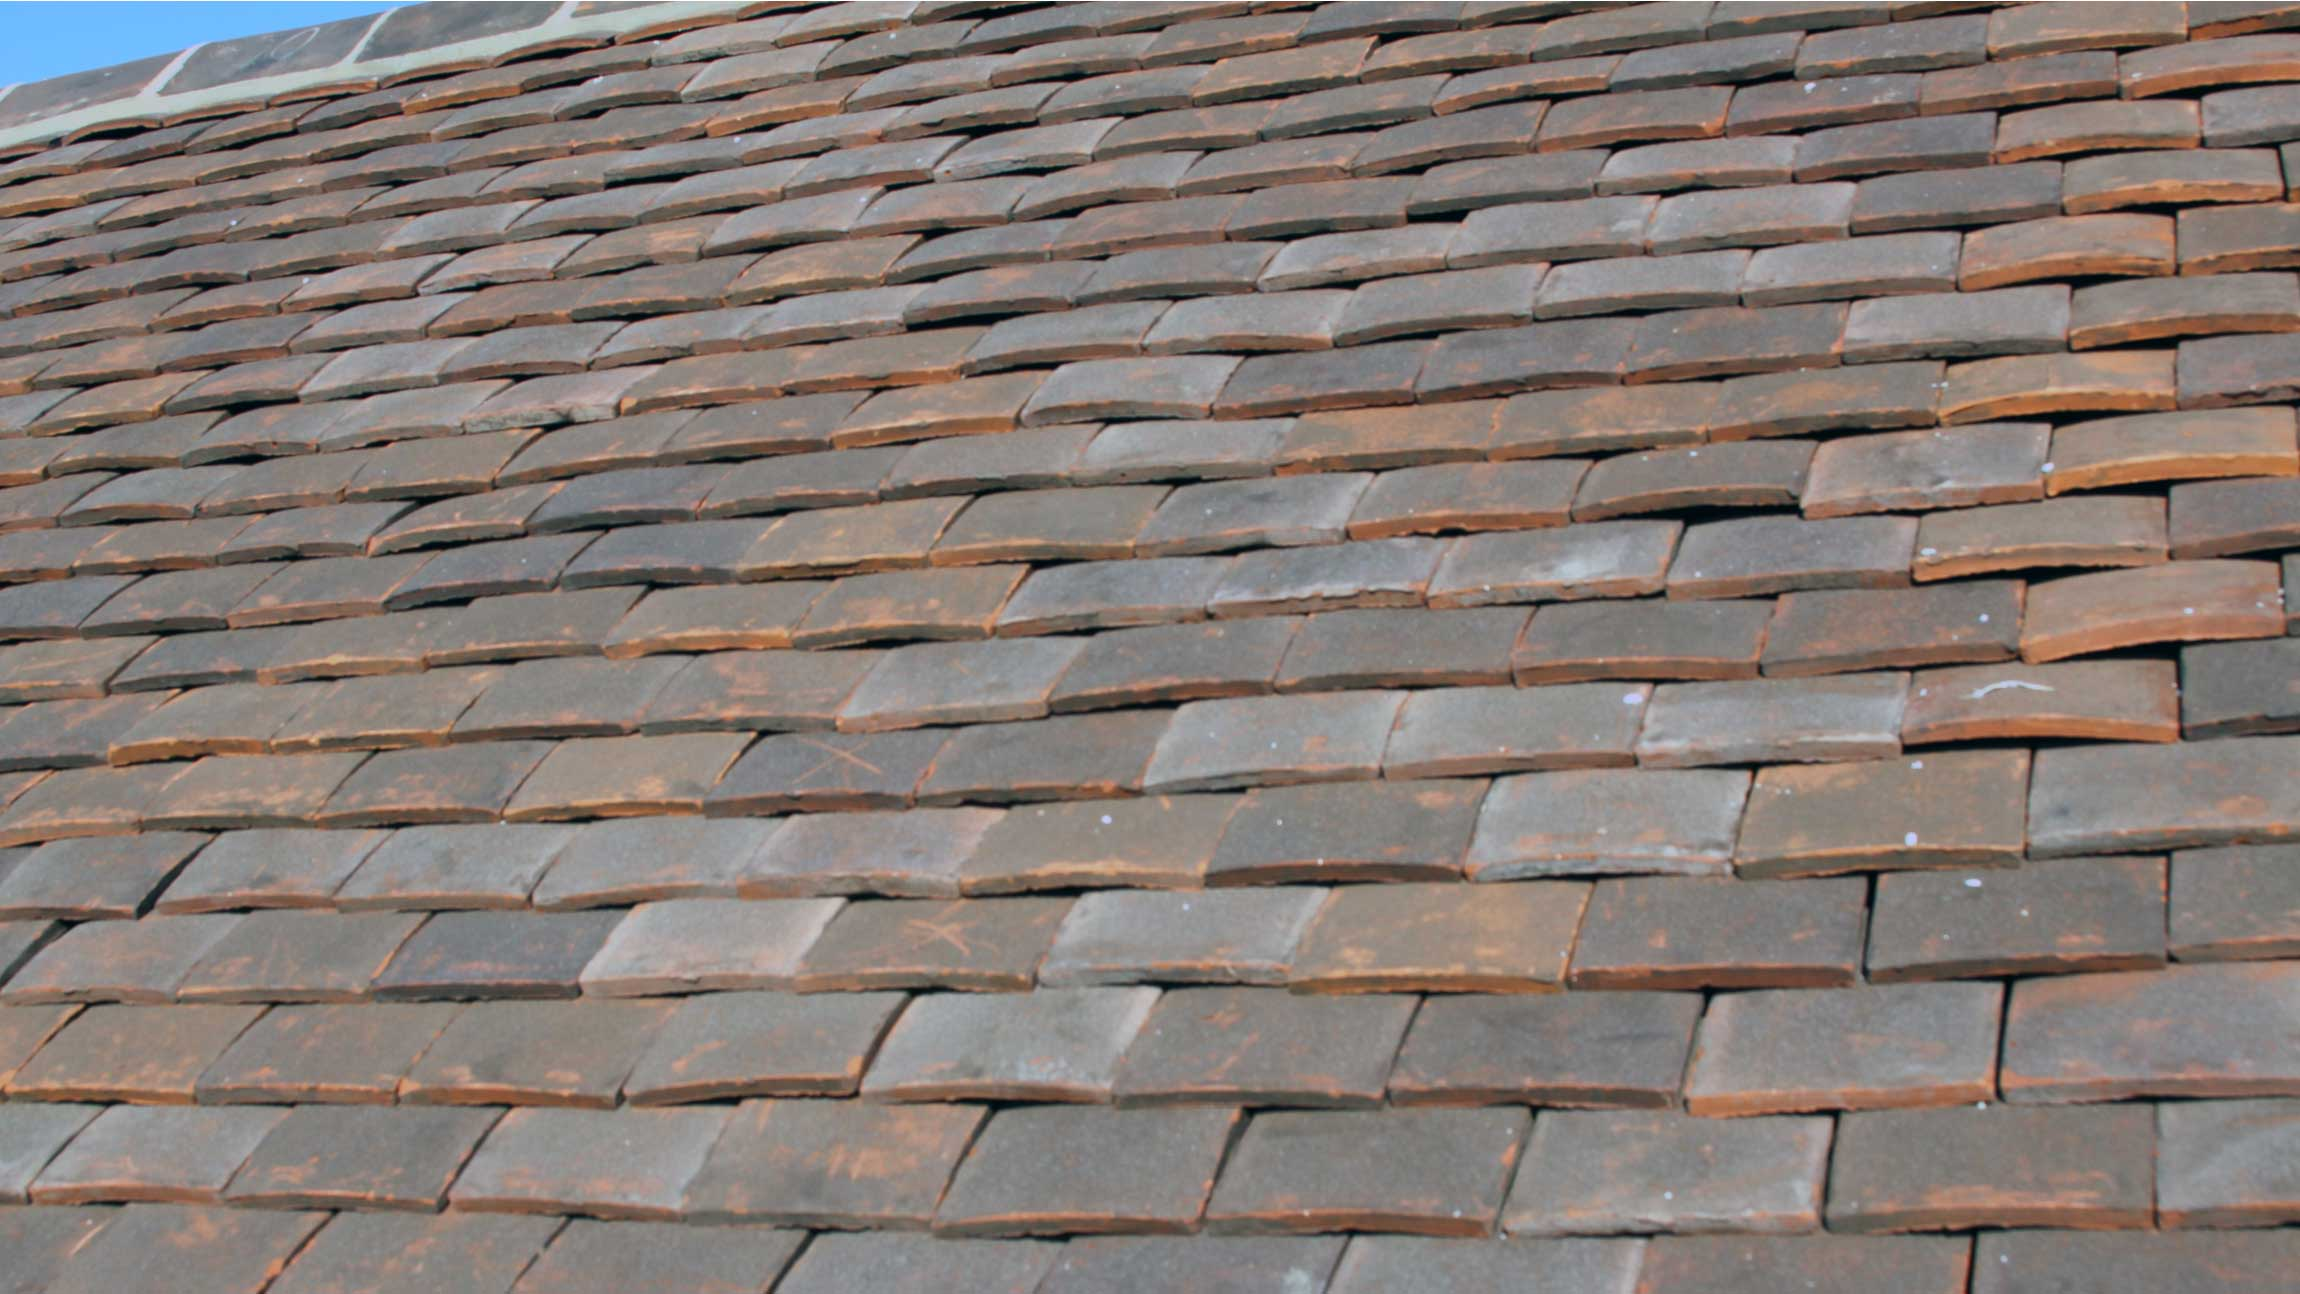 Roofing Products Marley Eternit Clay Tiles Jpg